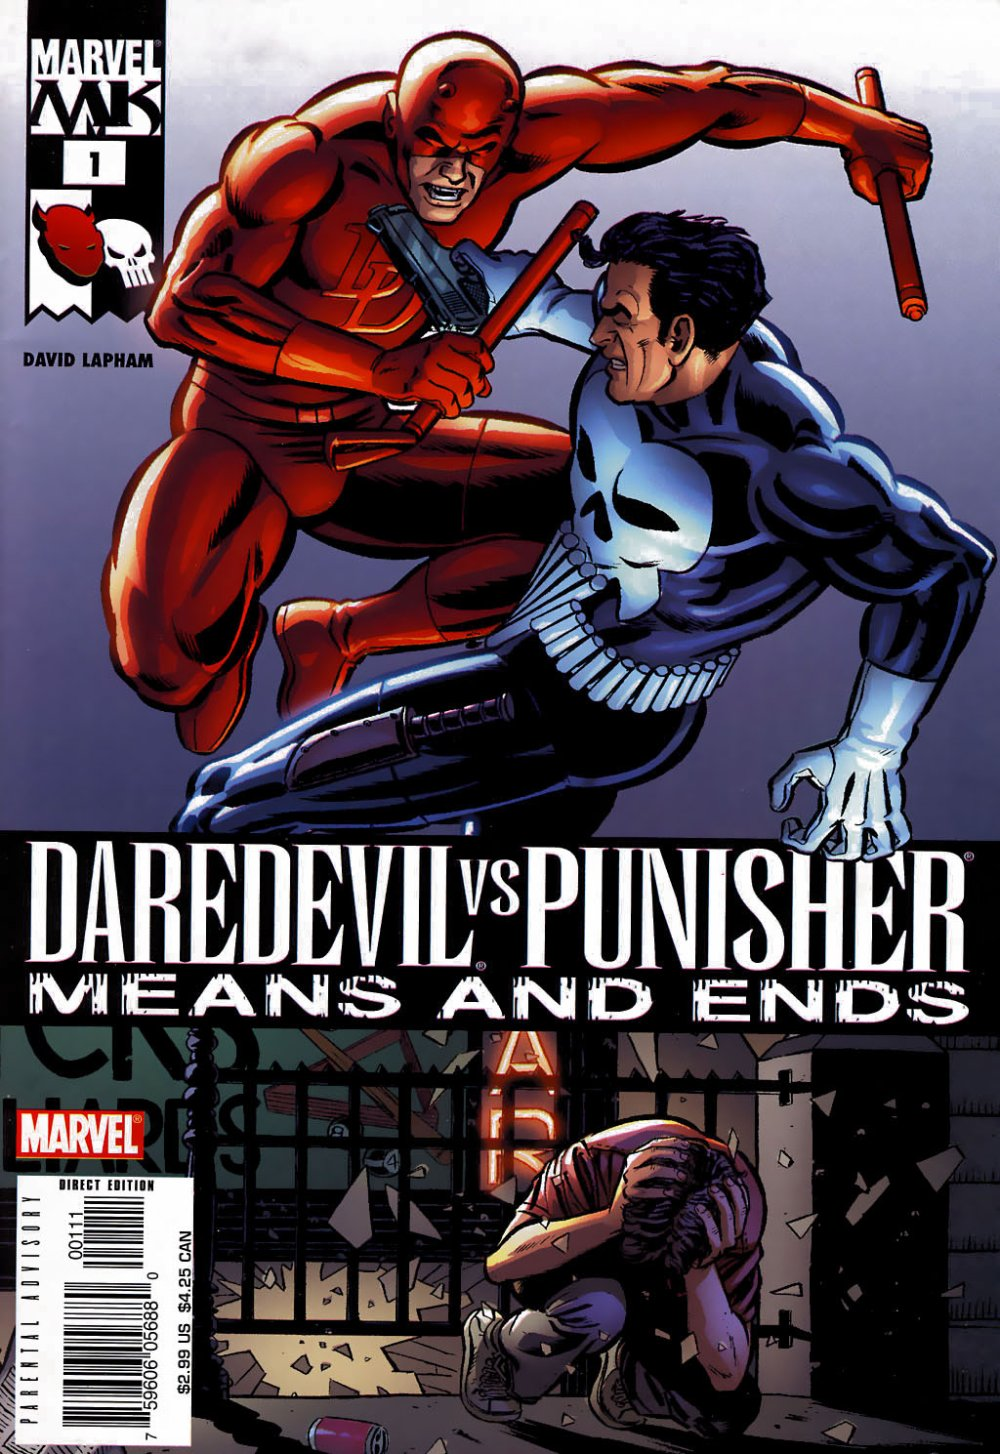 Daredevil- Vs Punisher- Means And Ends [Marvel Knights] Mini 1 0001.jpg